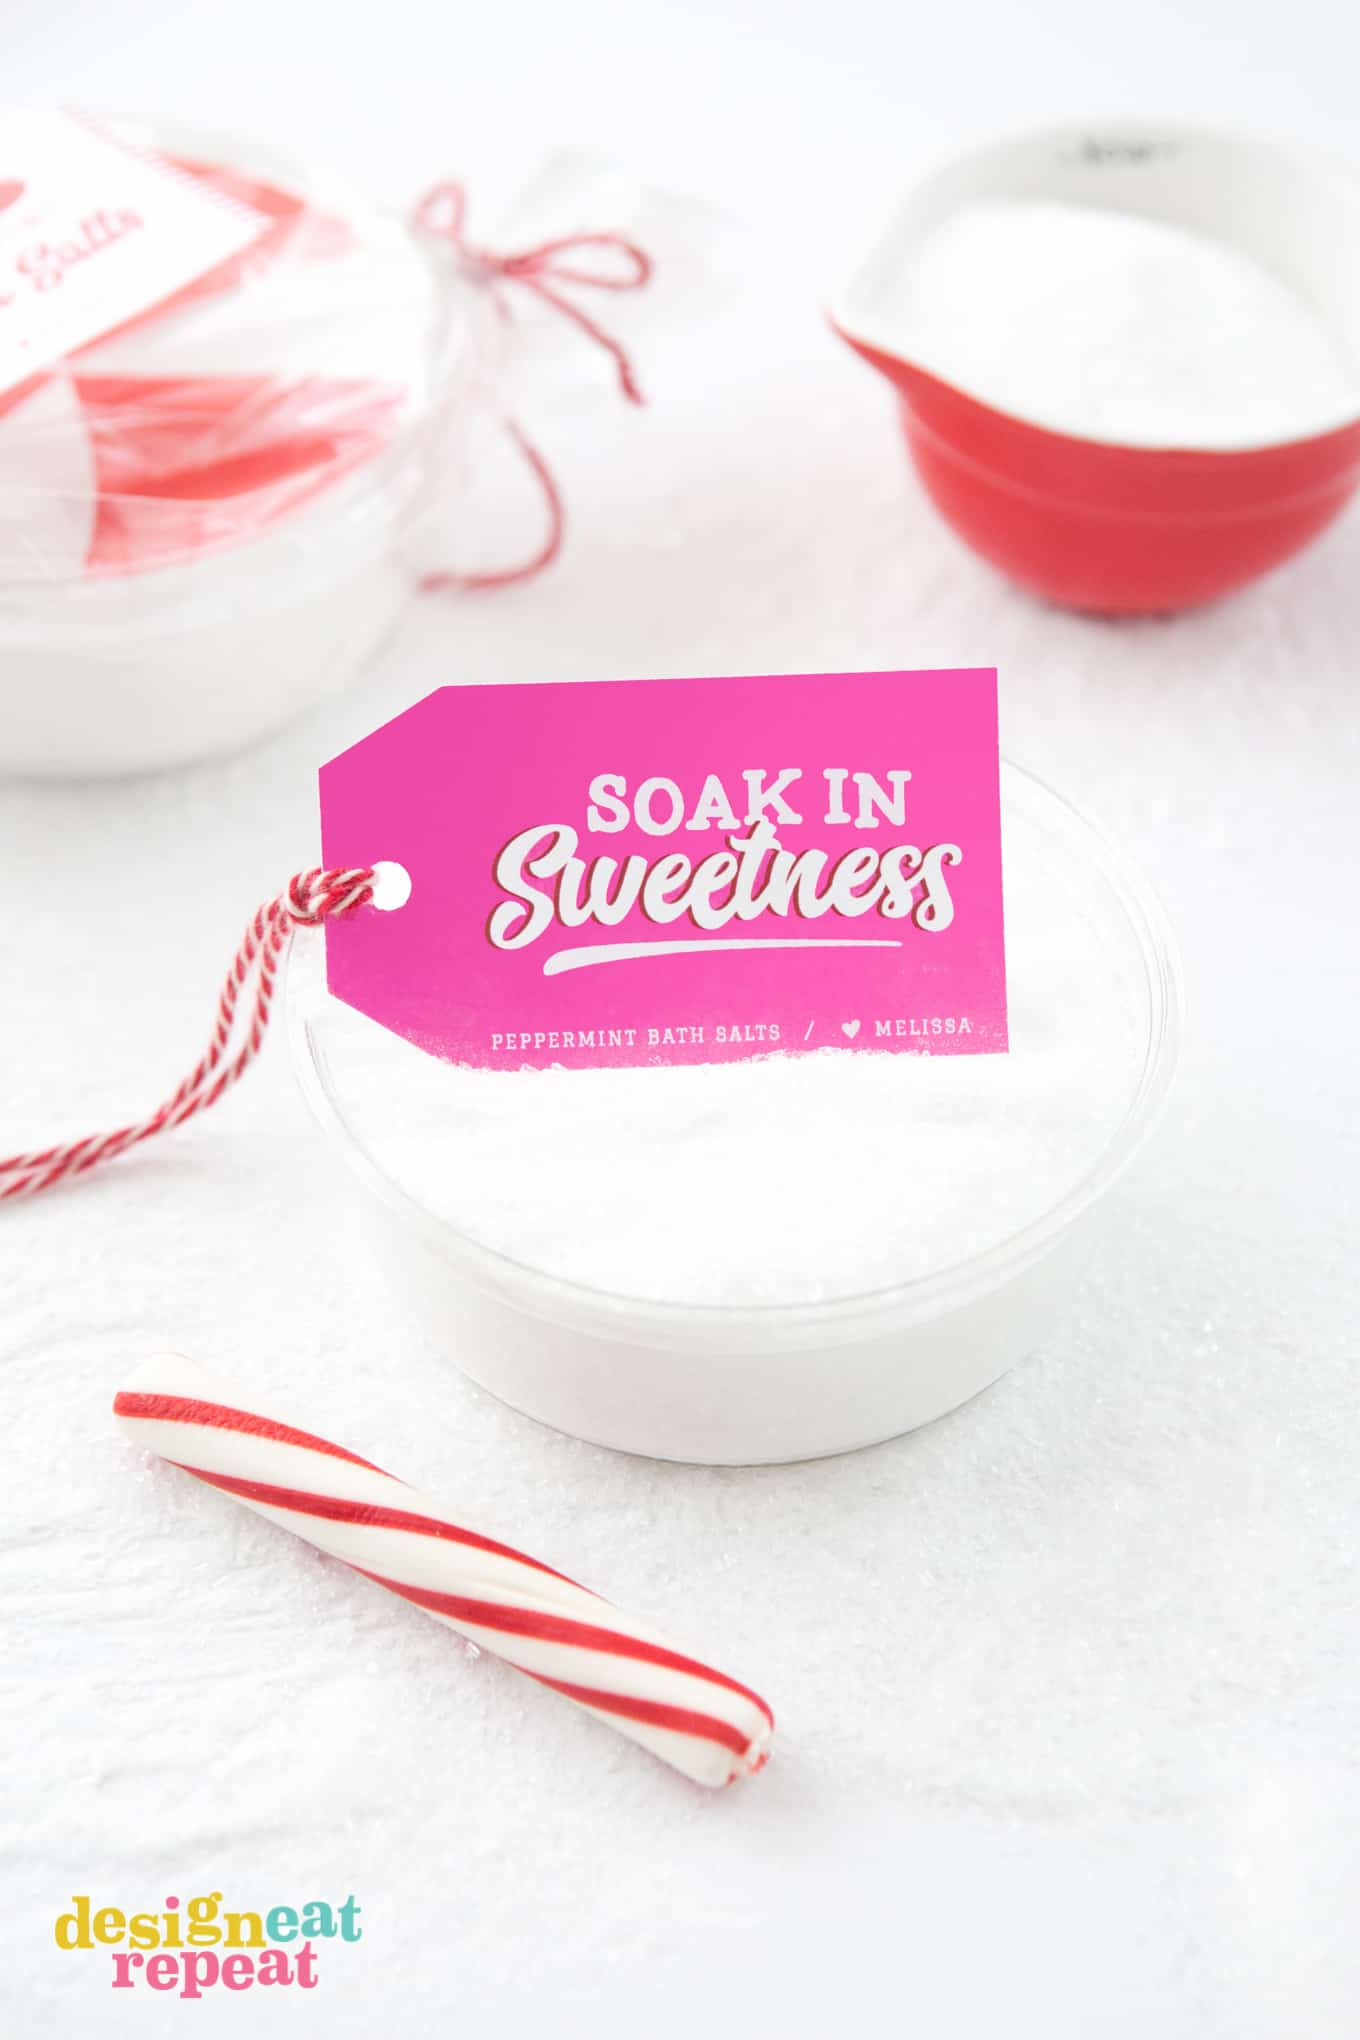 Learn how to mix up a batch of Peppermint DIY Bath Salt and pair it with these free printable gift tags for homemade holiday gifts your friends & family will love!